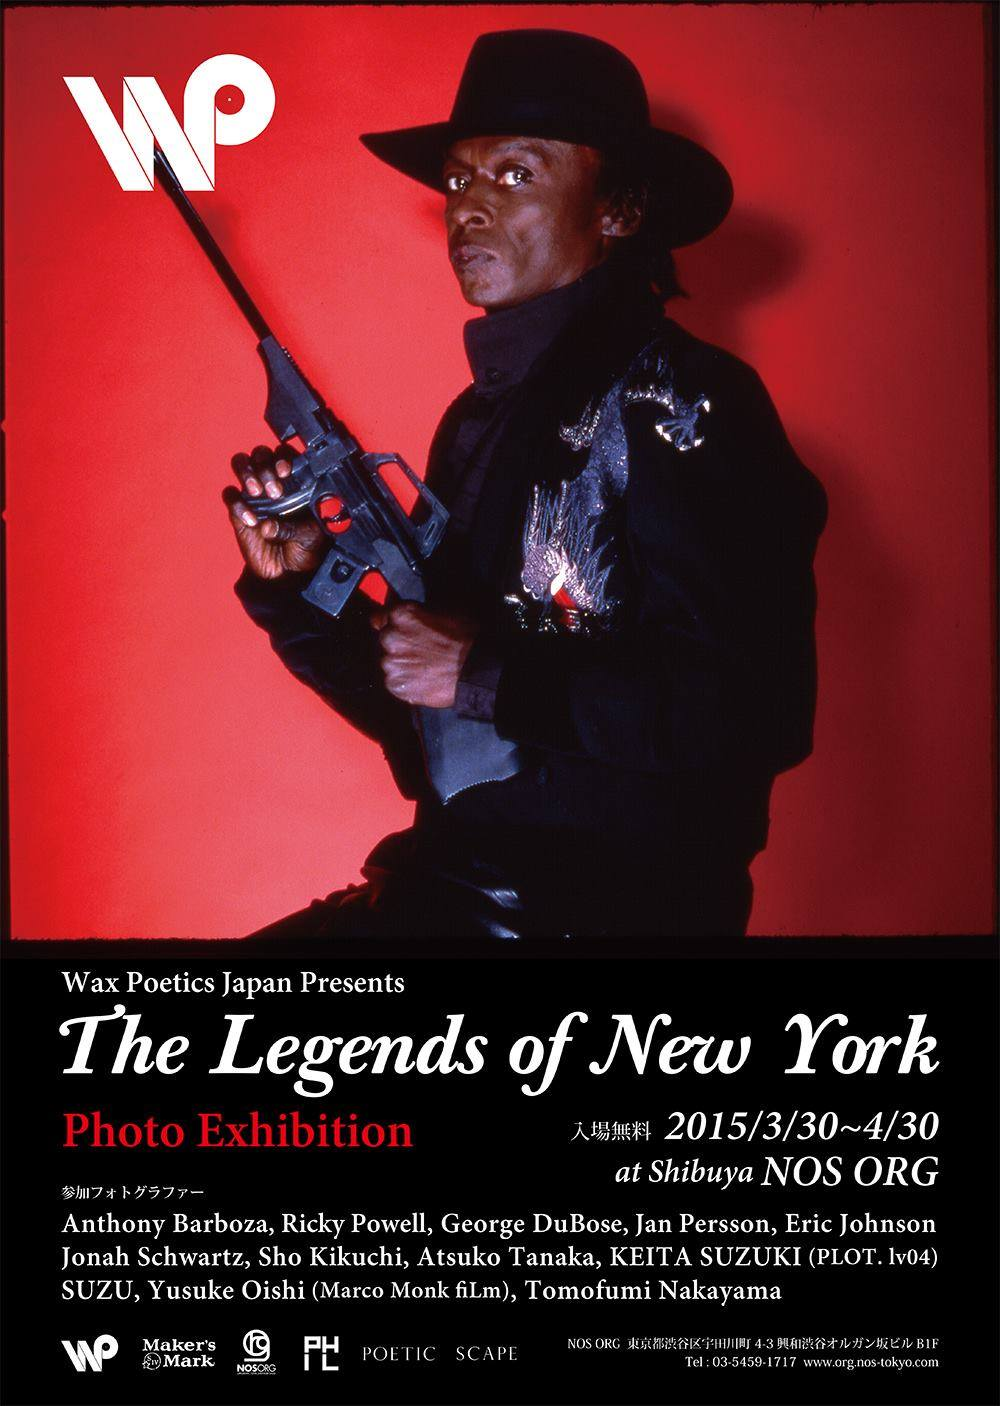 The Legends of New York  Group Exhibition  byWax Poetics Japan  @ Nos Shibuya  3/30-5/13/2015  Poster Image